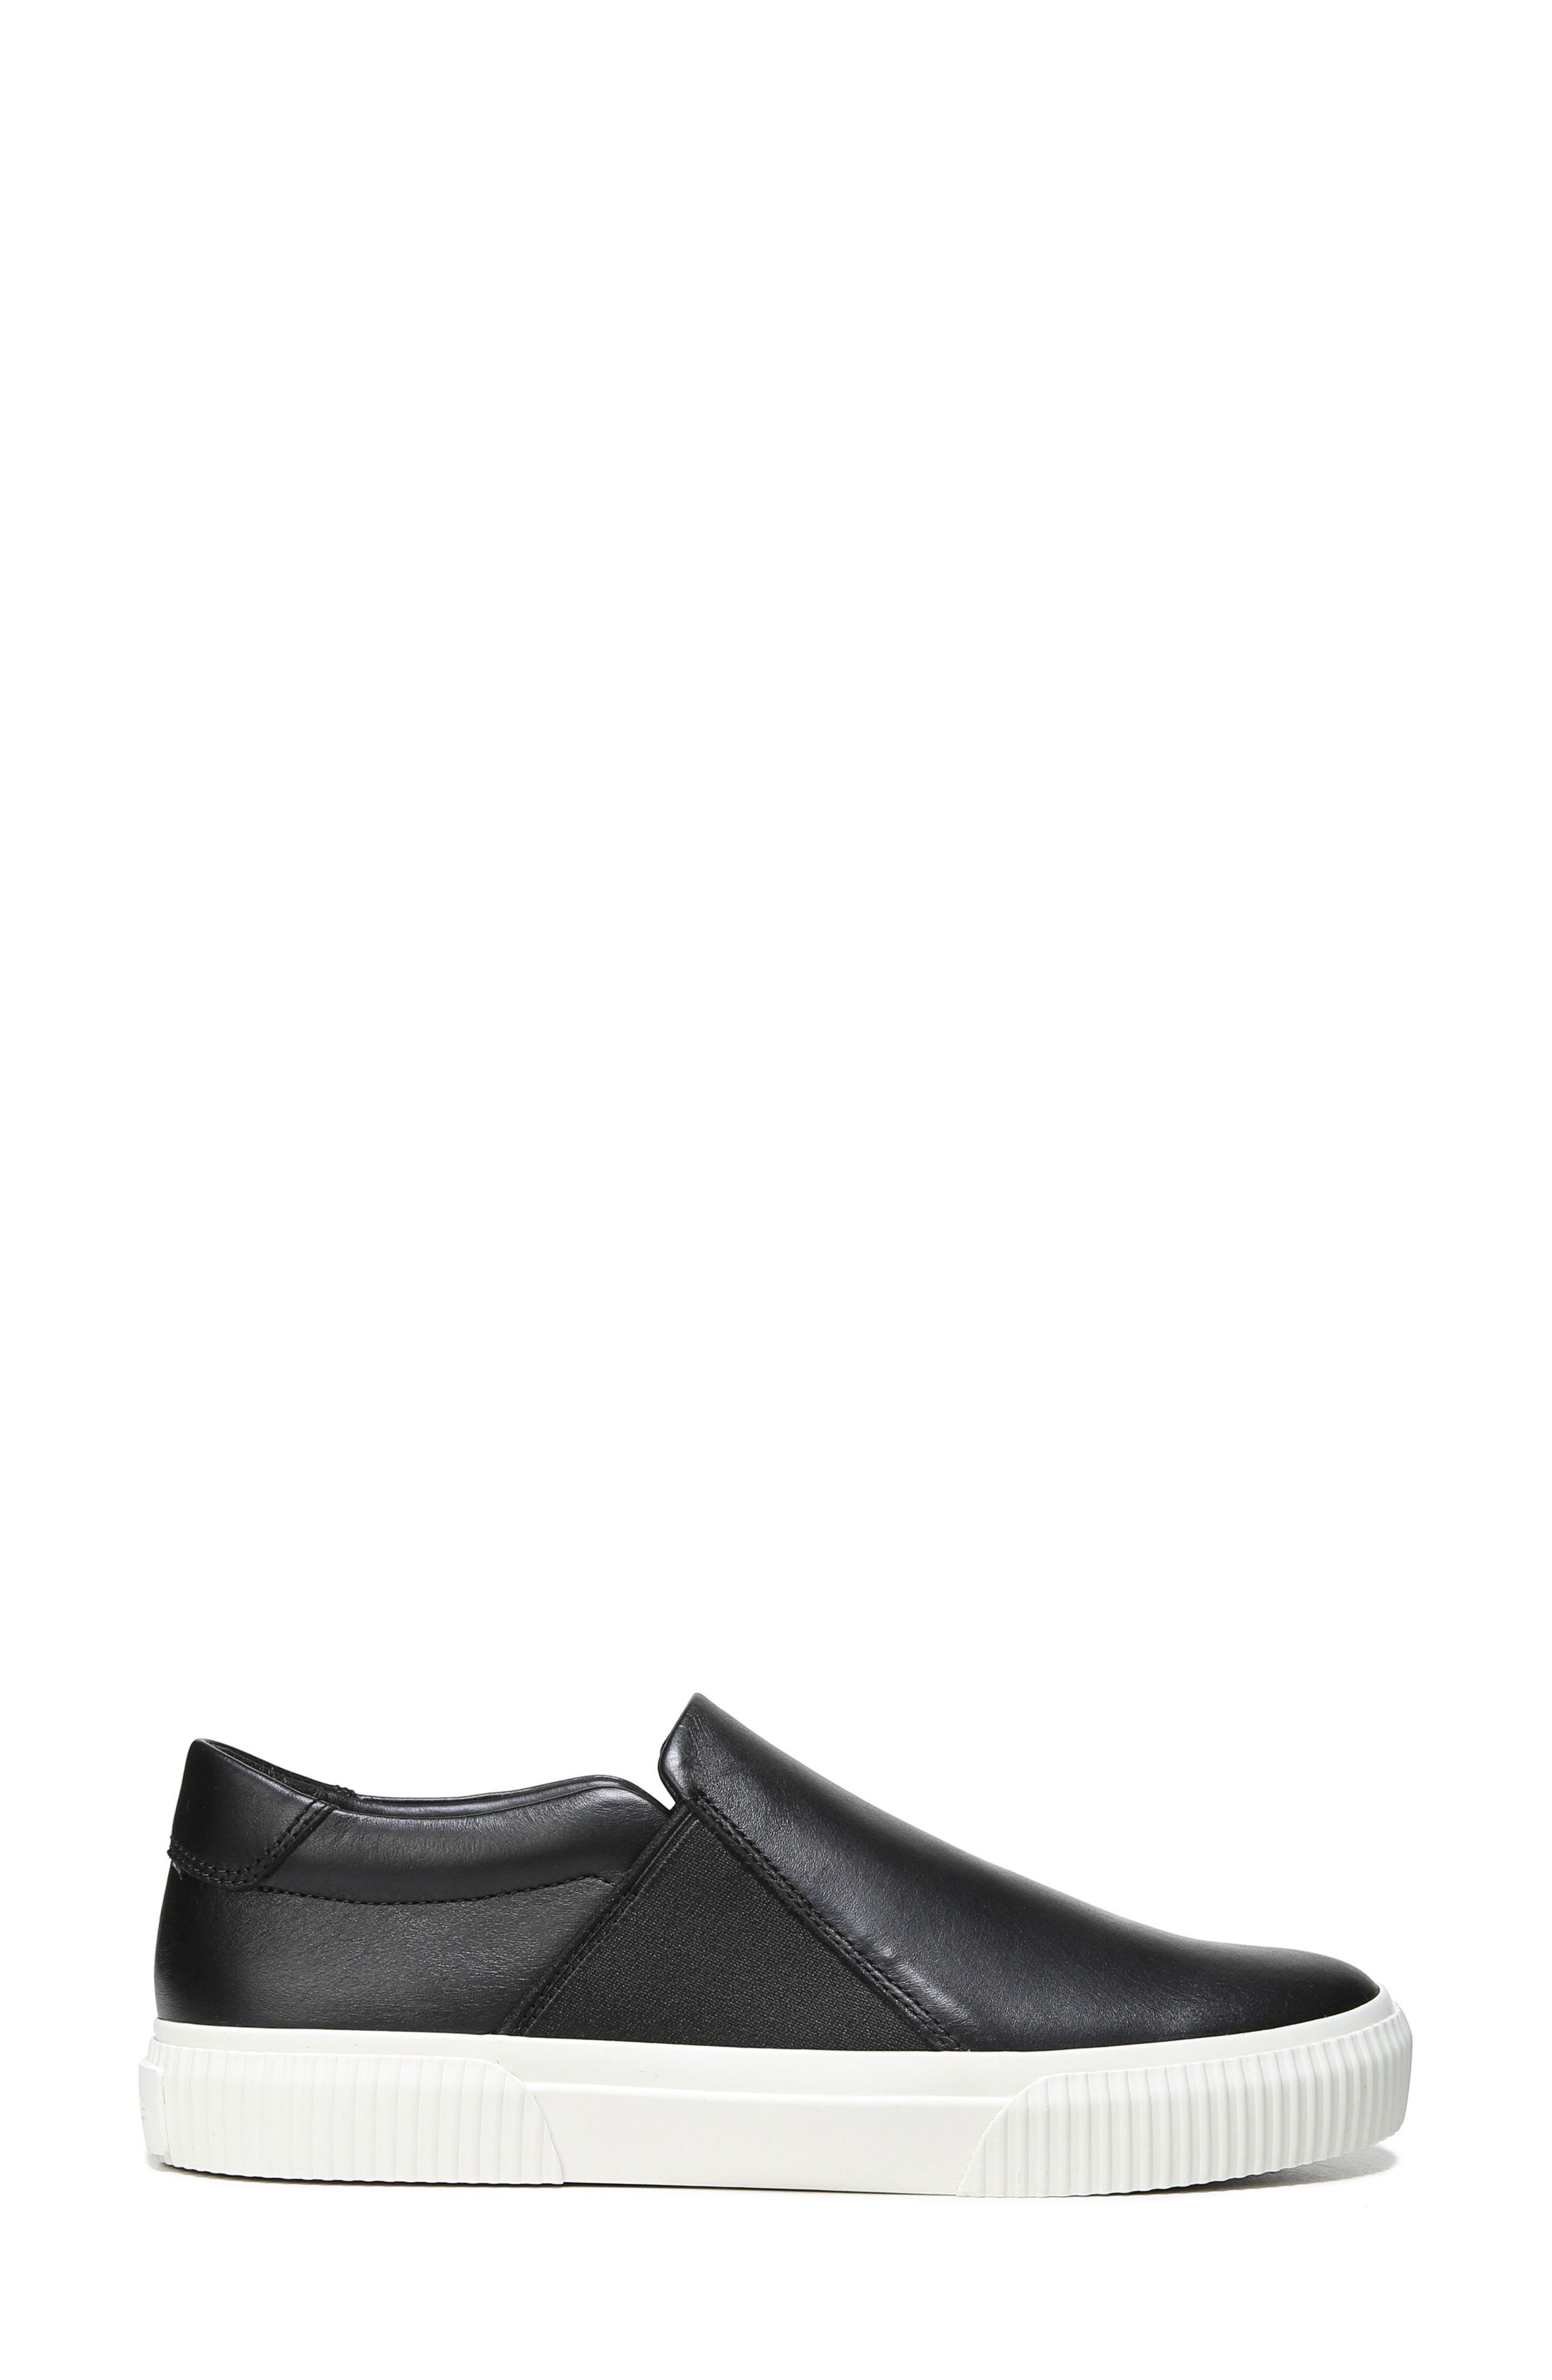 Knox Slip-On Sneaker,                             Alternate thumbnail 3, color,                             Black Leather